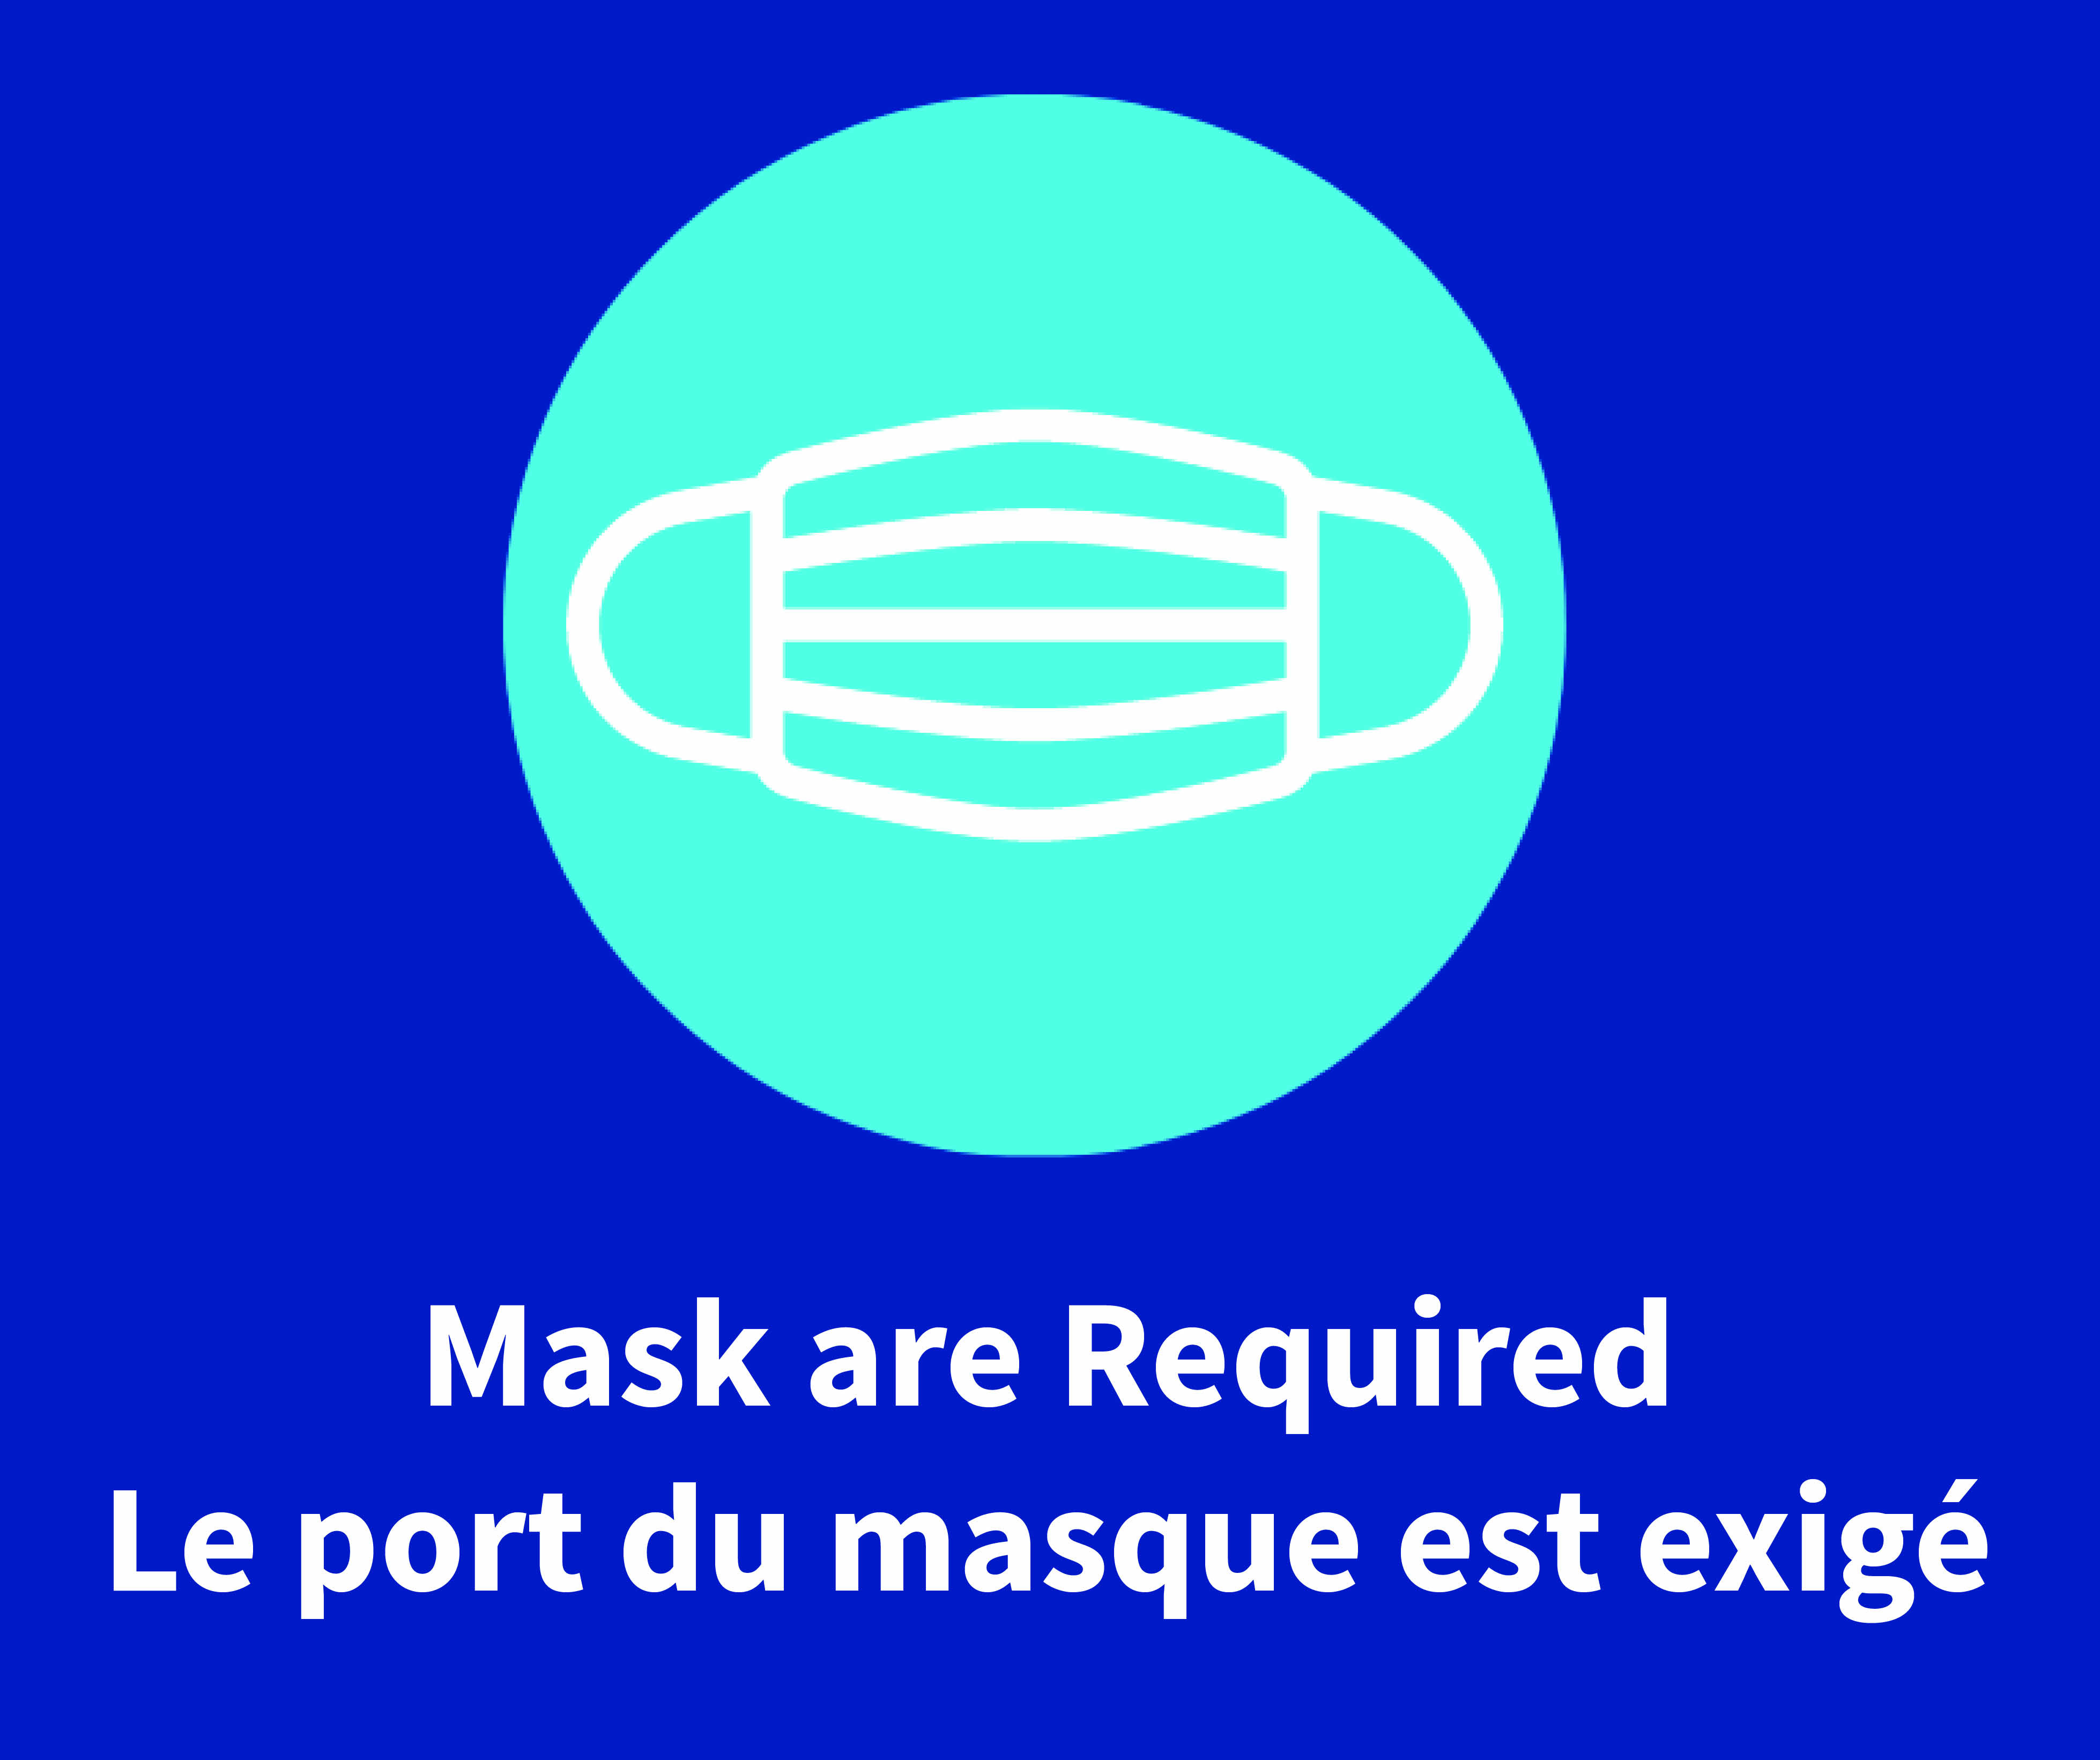 Please wear a mask at all times